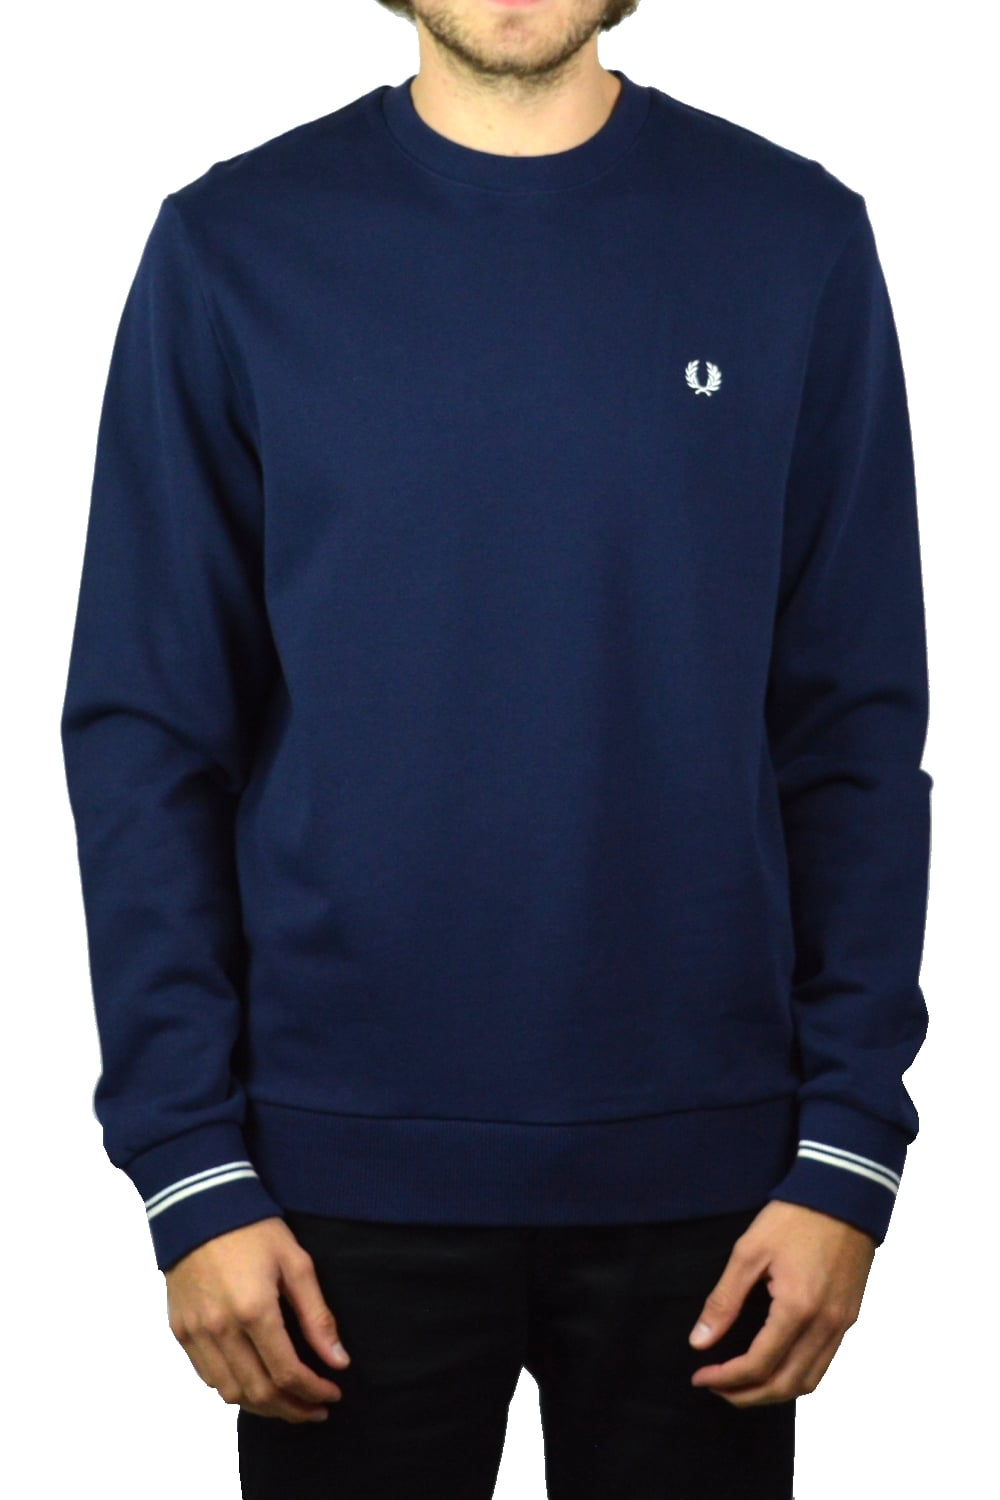 a6c6fec9fa8 Fred Perry Crew Neck Long-Sleeved Sweatshirt (Carbon Blue)